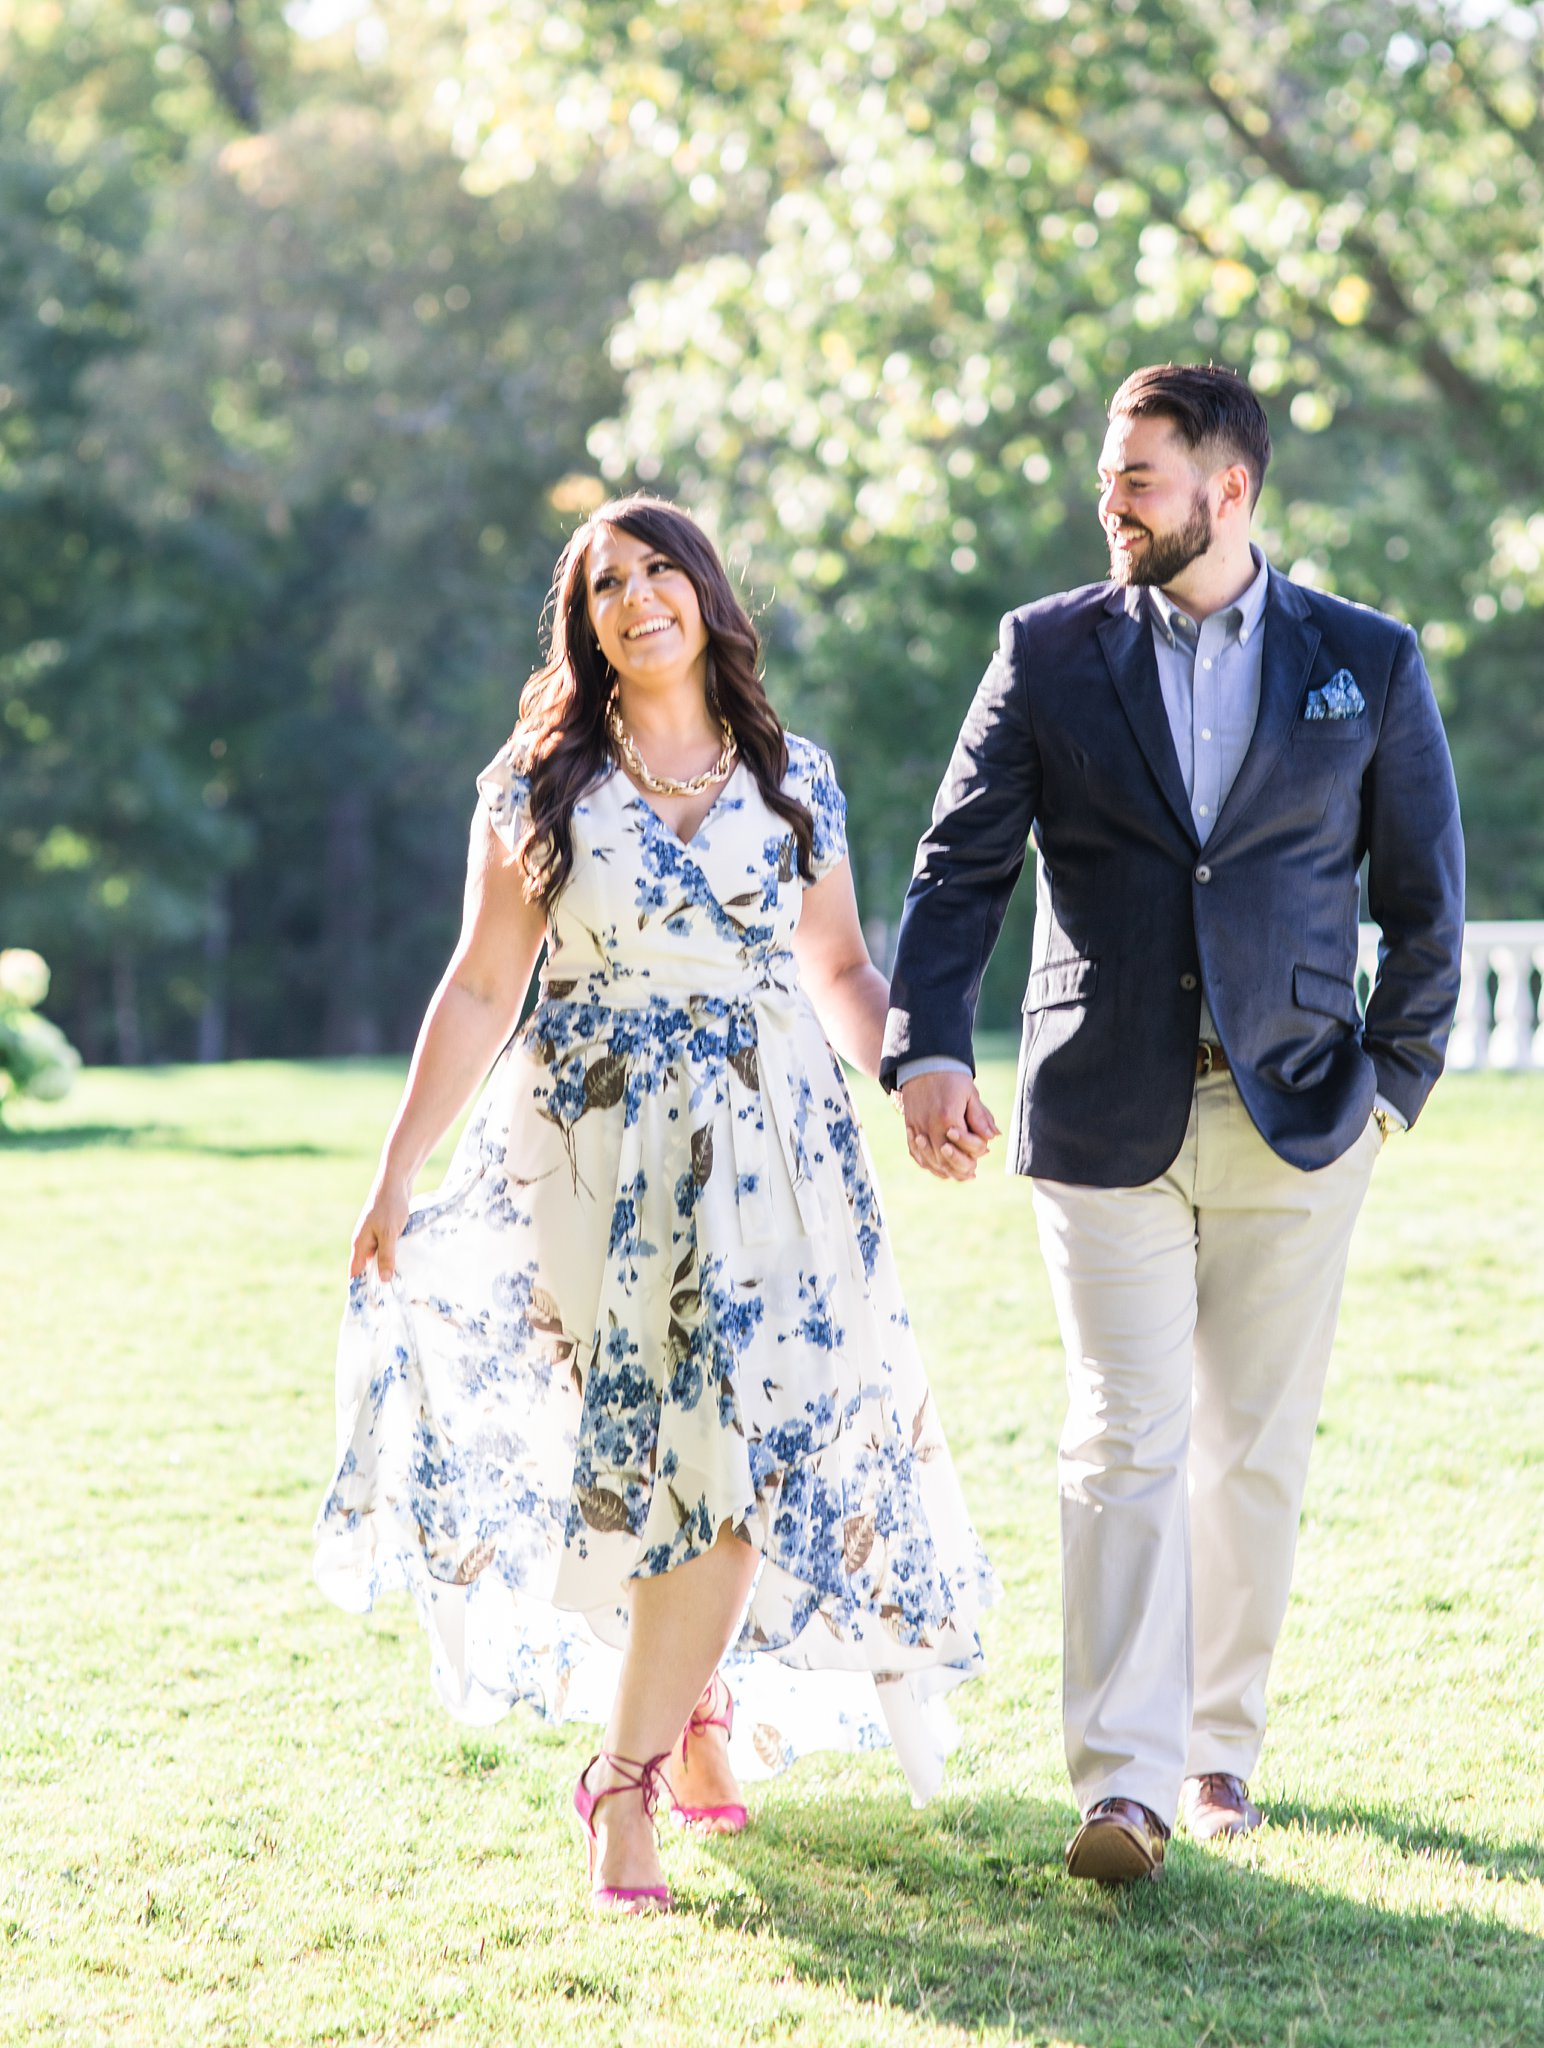 Walking in open sun, Mackenzie King Estate Engagement Photos by Amy Pinder Photography